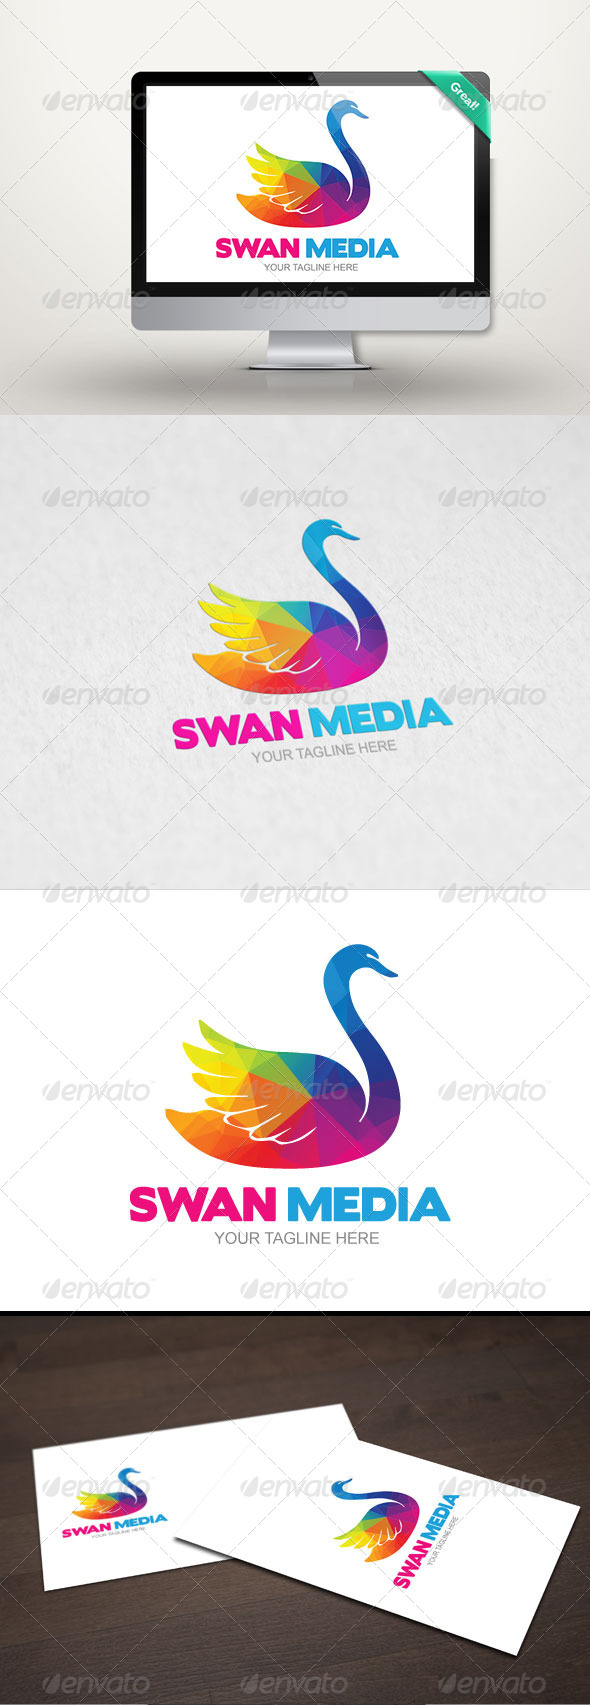 GraphicRiver Swan Media Logo Template 8321602